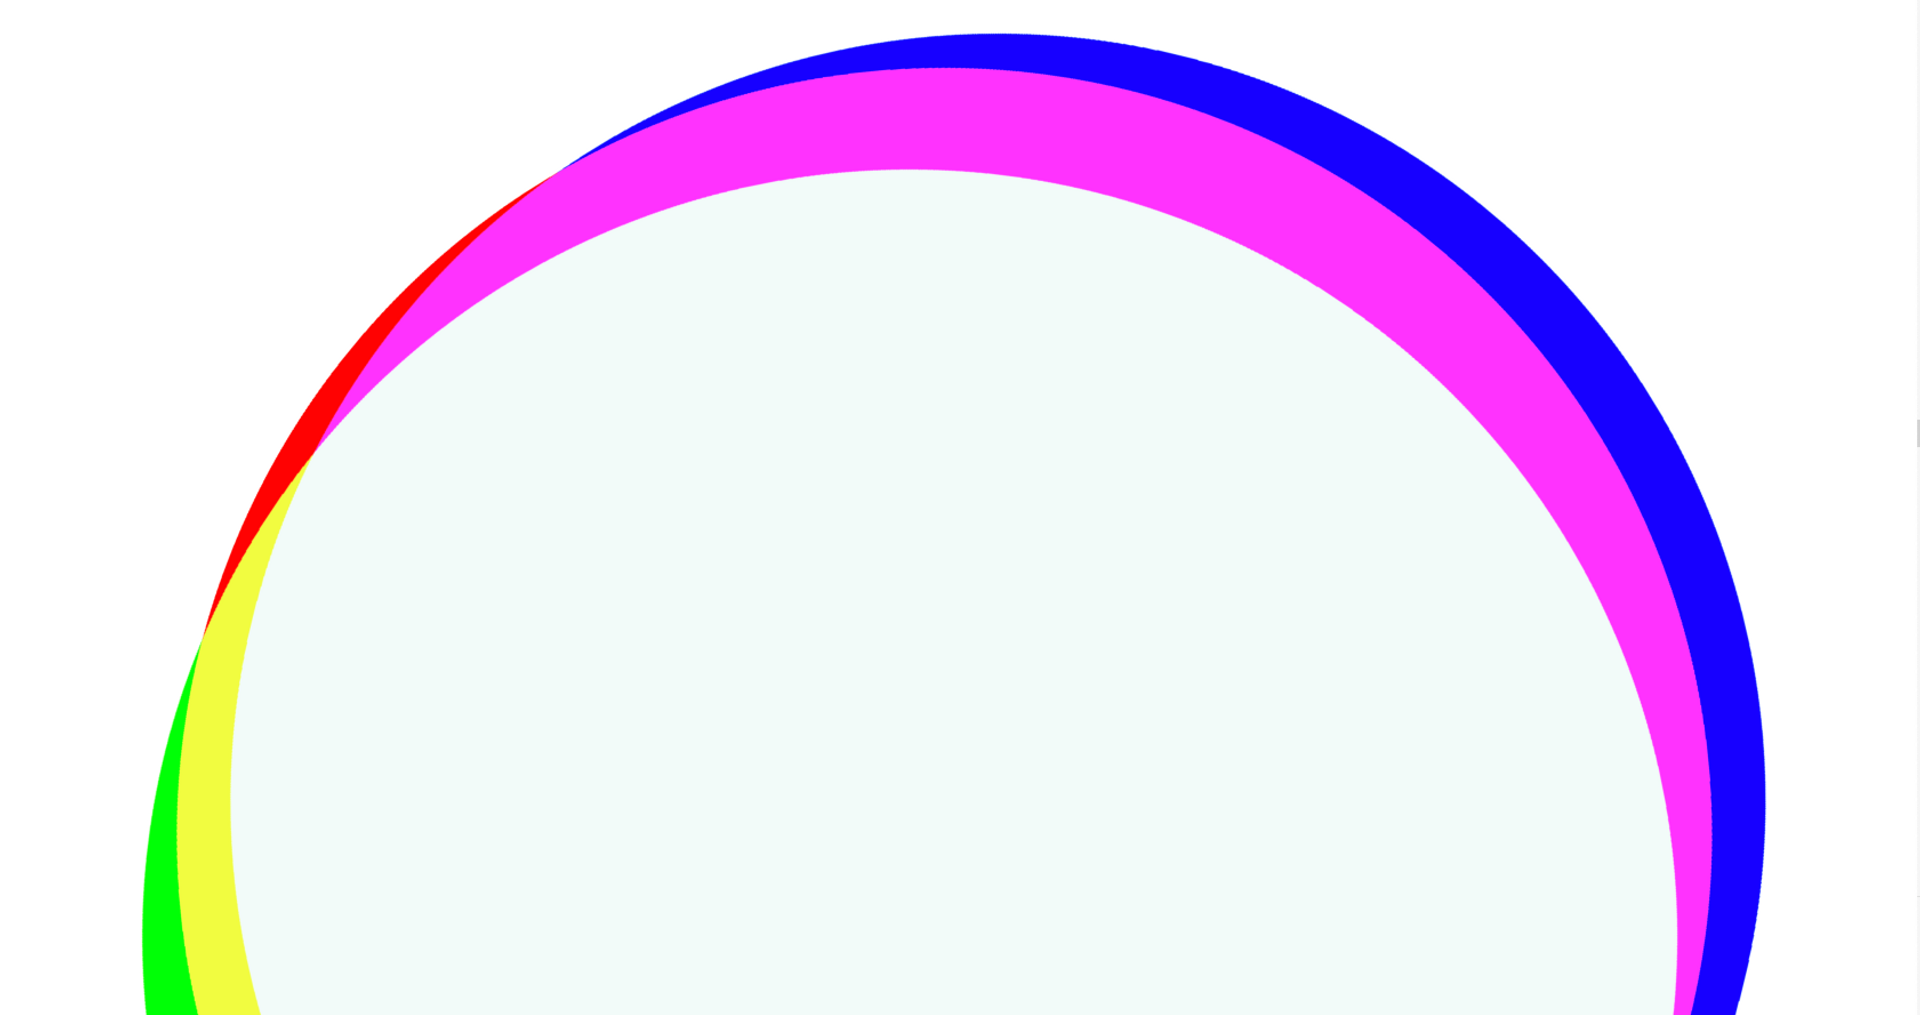 SVG animation with CSS